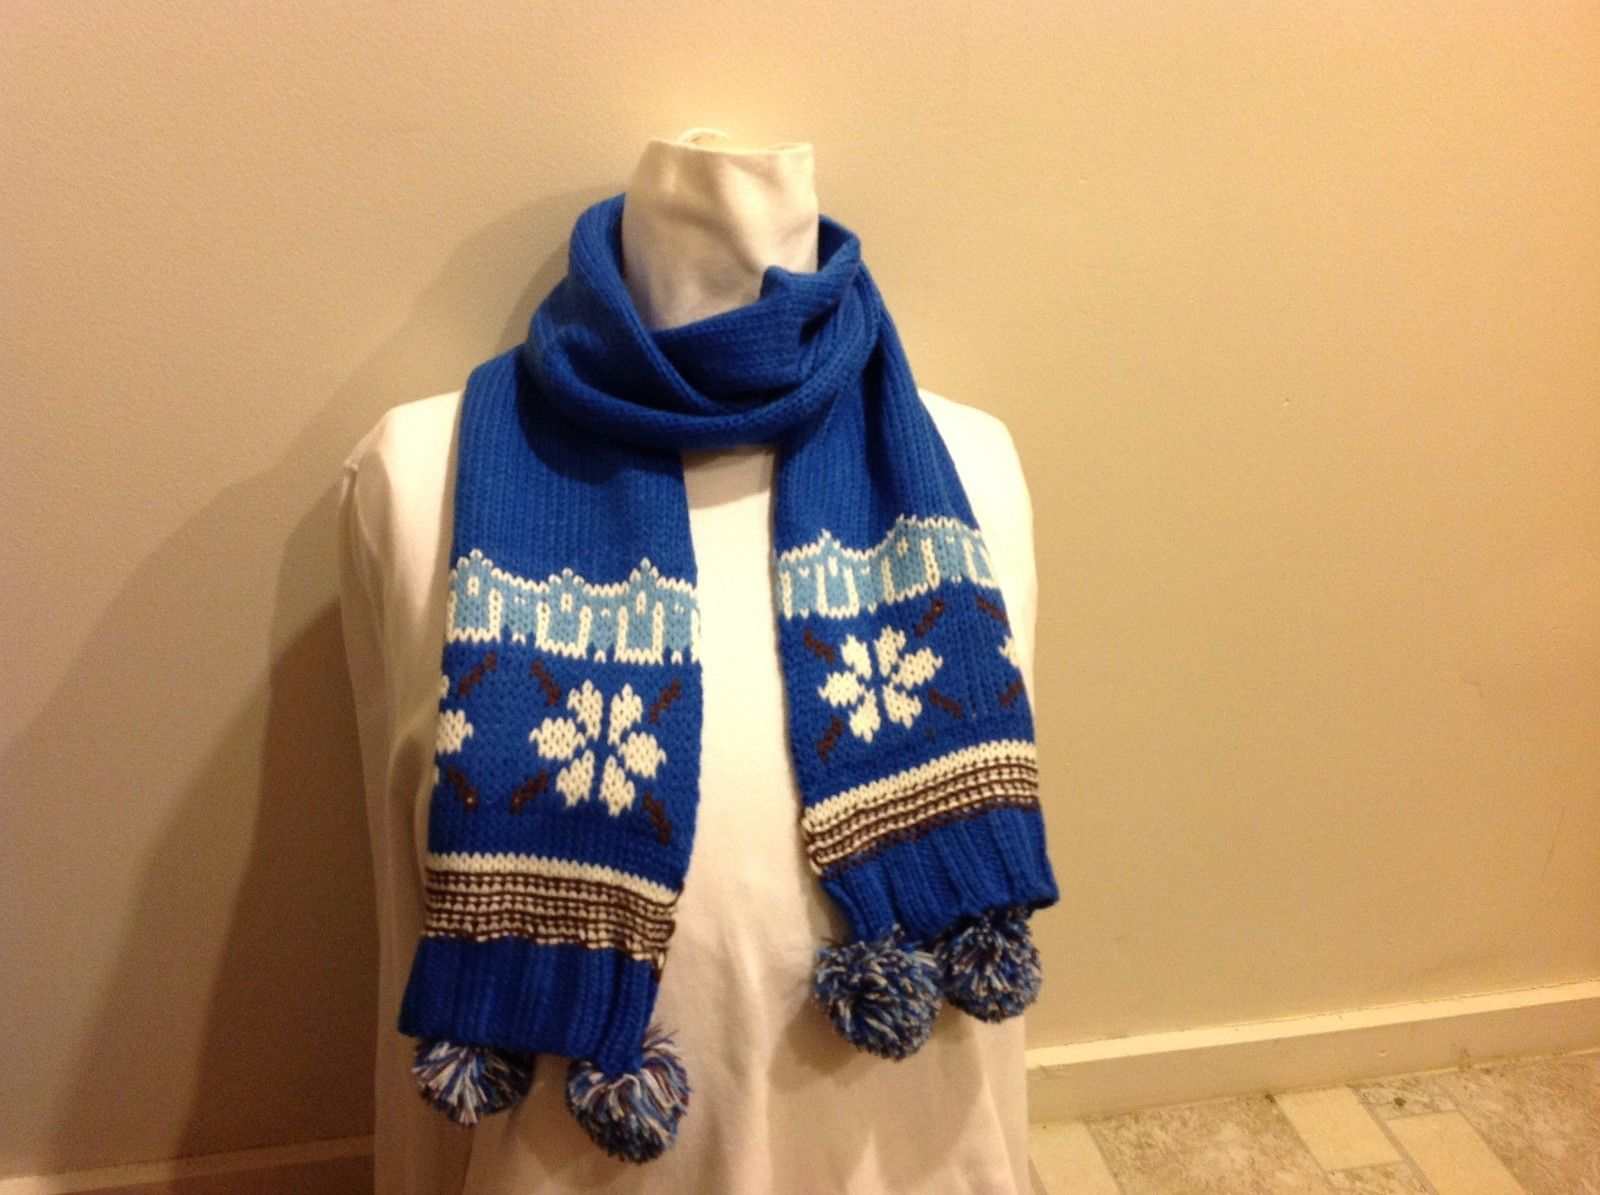 Cute Blue Winter Scarf w Snowflake Pattern on Ends and Pom Poms